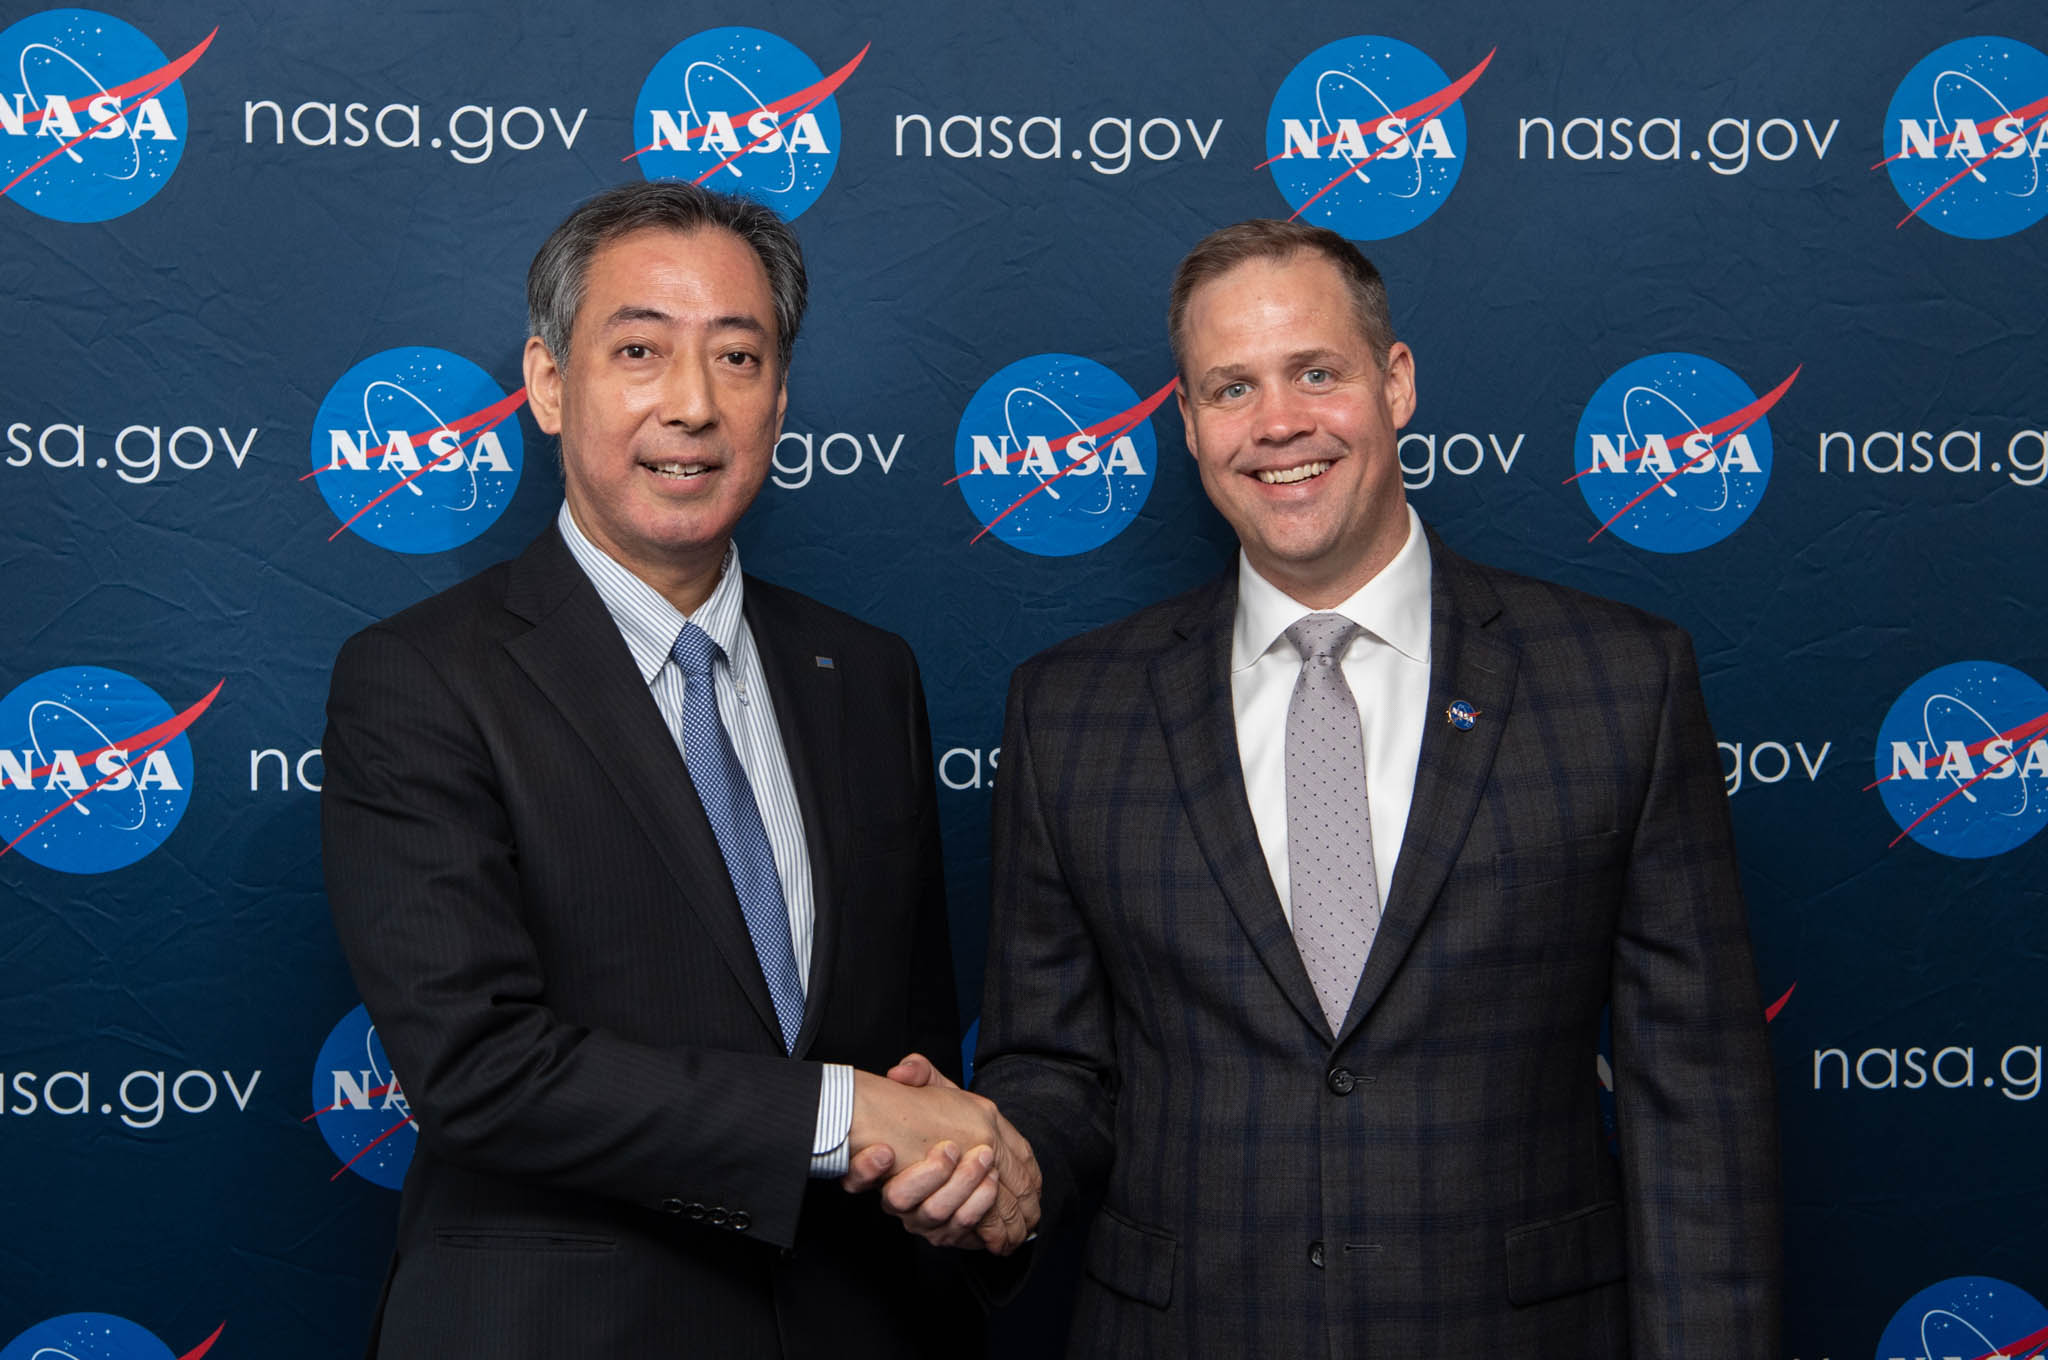 Two men shaking hands in front of wall with NASA signs (Aubrey Gemignani/NASA)